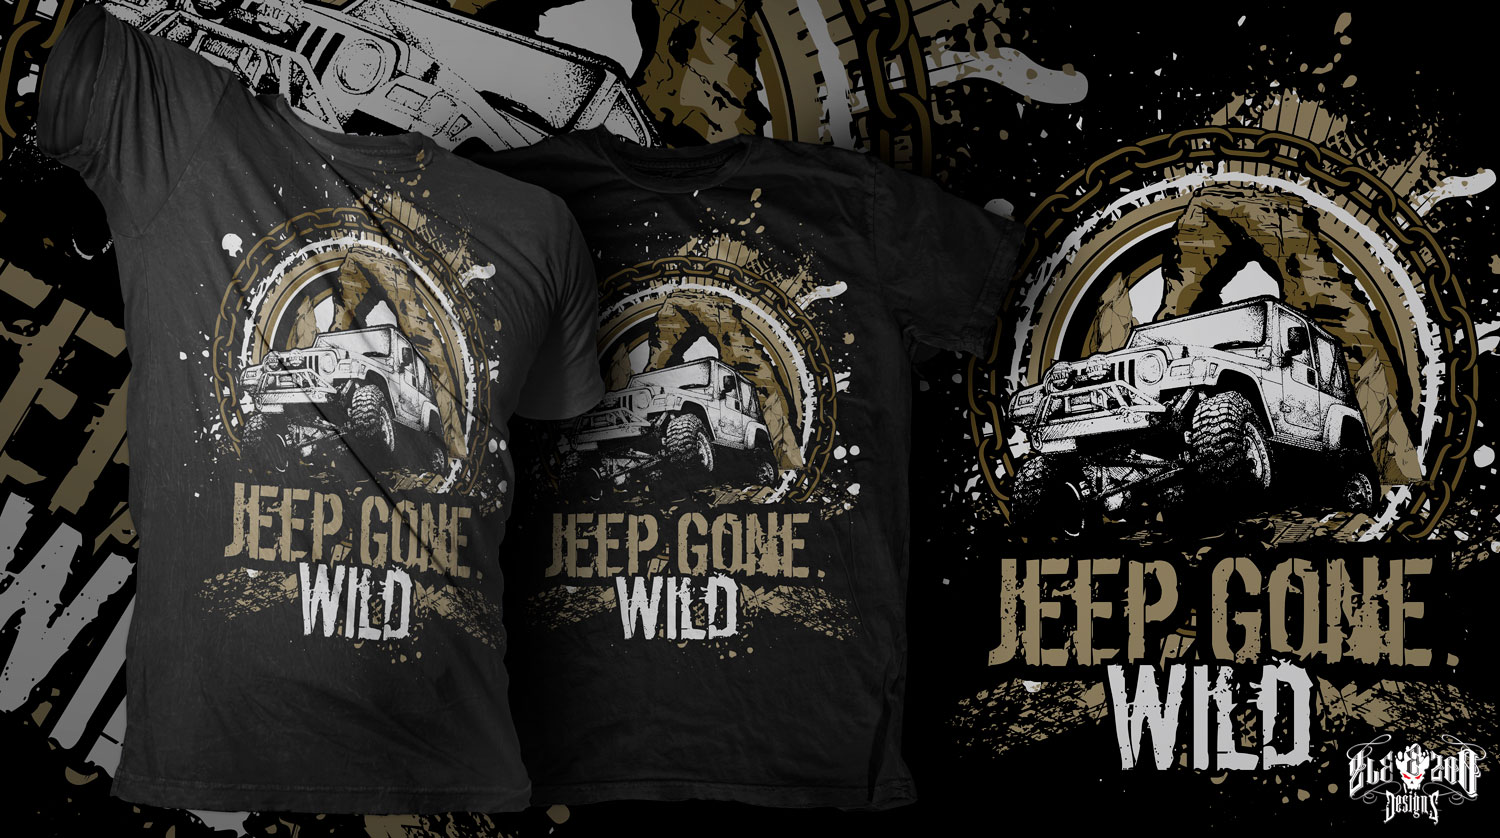 Modern Bold Tshirt Design For Jeep Gone Wild By Zleezoo Design - Jeep t shirt design